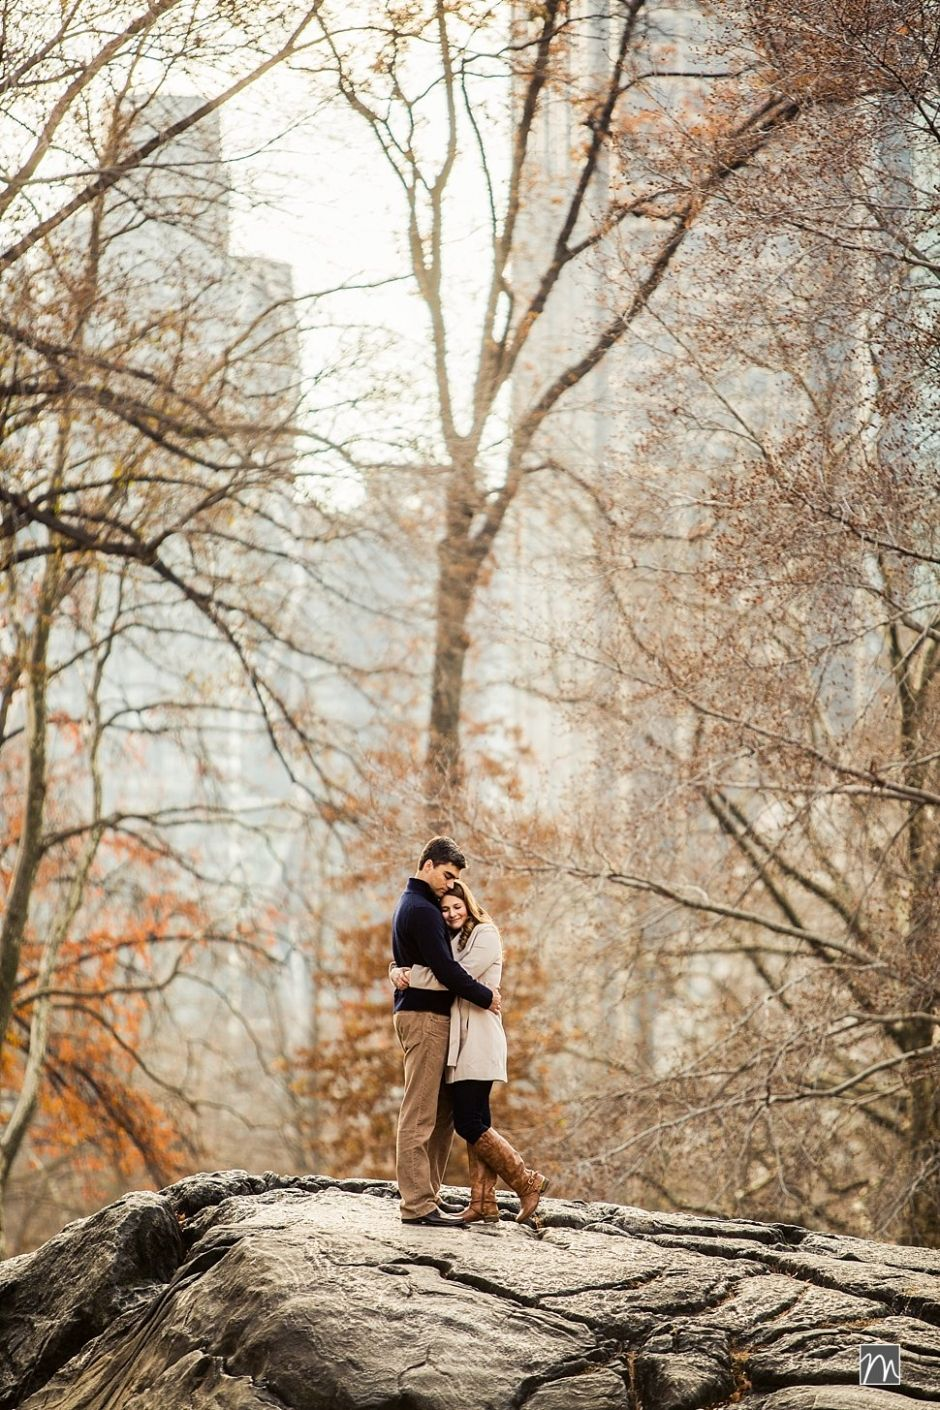 Central Park Wedding Photography: Fall Central Park Engagement Photos In New York @Mekyla